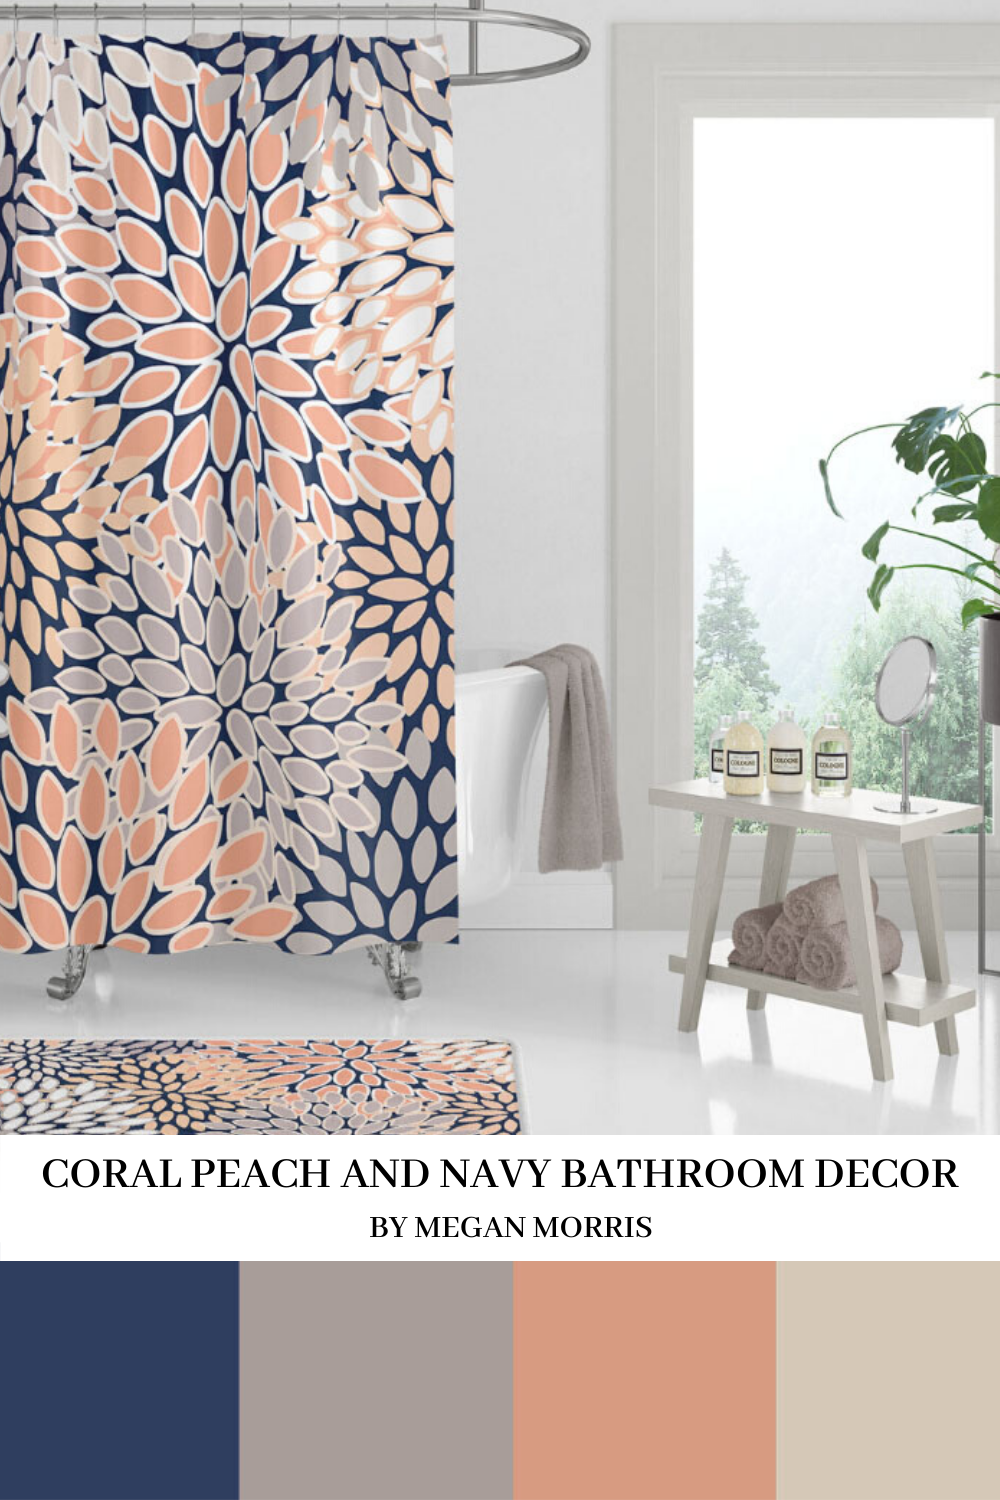 Home Decor Bathroom Colors Coral Peach And Navy Shower Curtain Color Inspiration In 2020 Blue Bathroom Decor Coral Bathroom Decor Bathroom Decor Colors